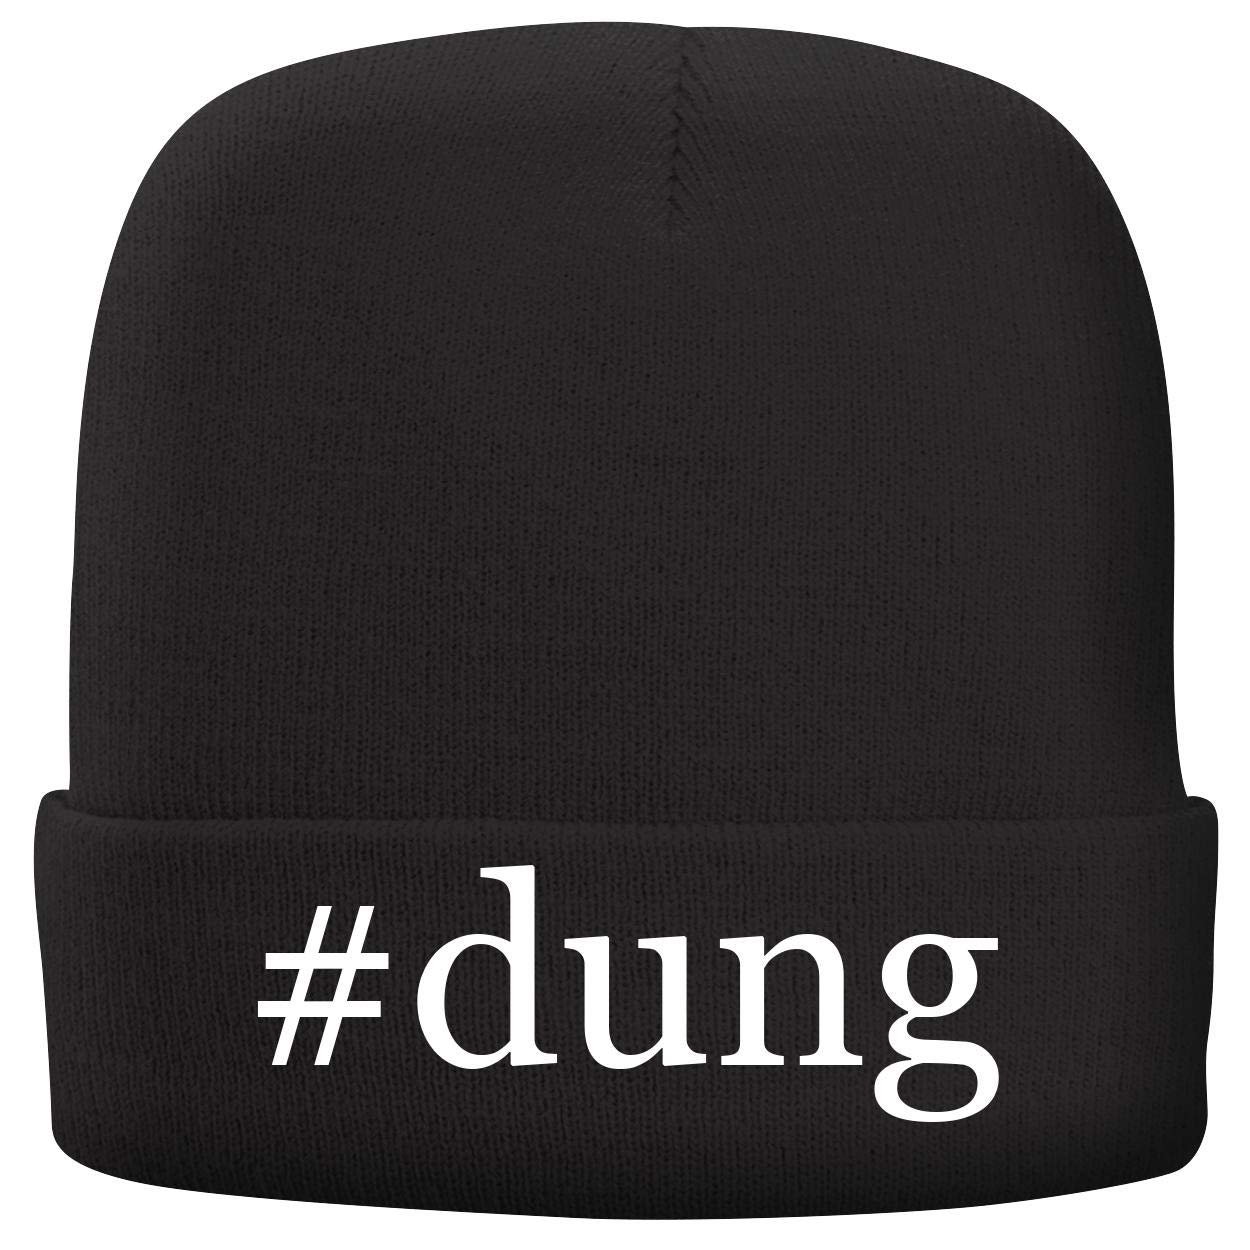 BH Cool Designs #Dung - Adult Comfortable Fleece Lined Beanie